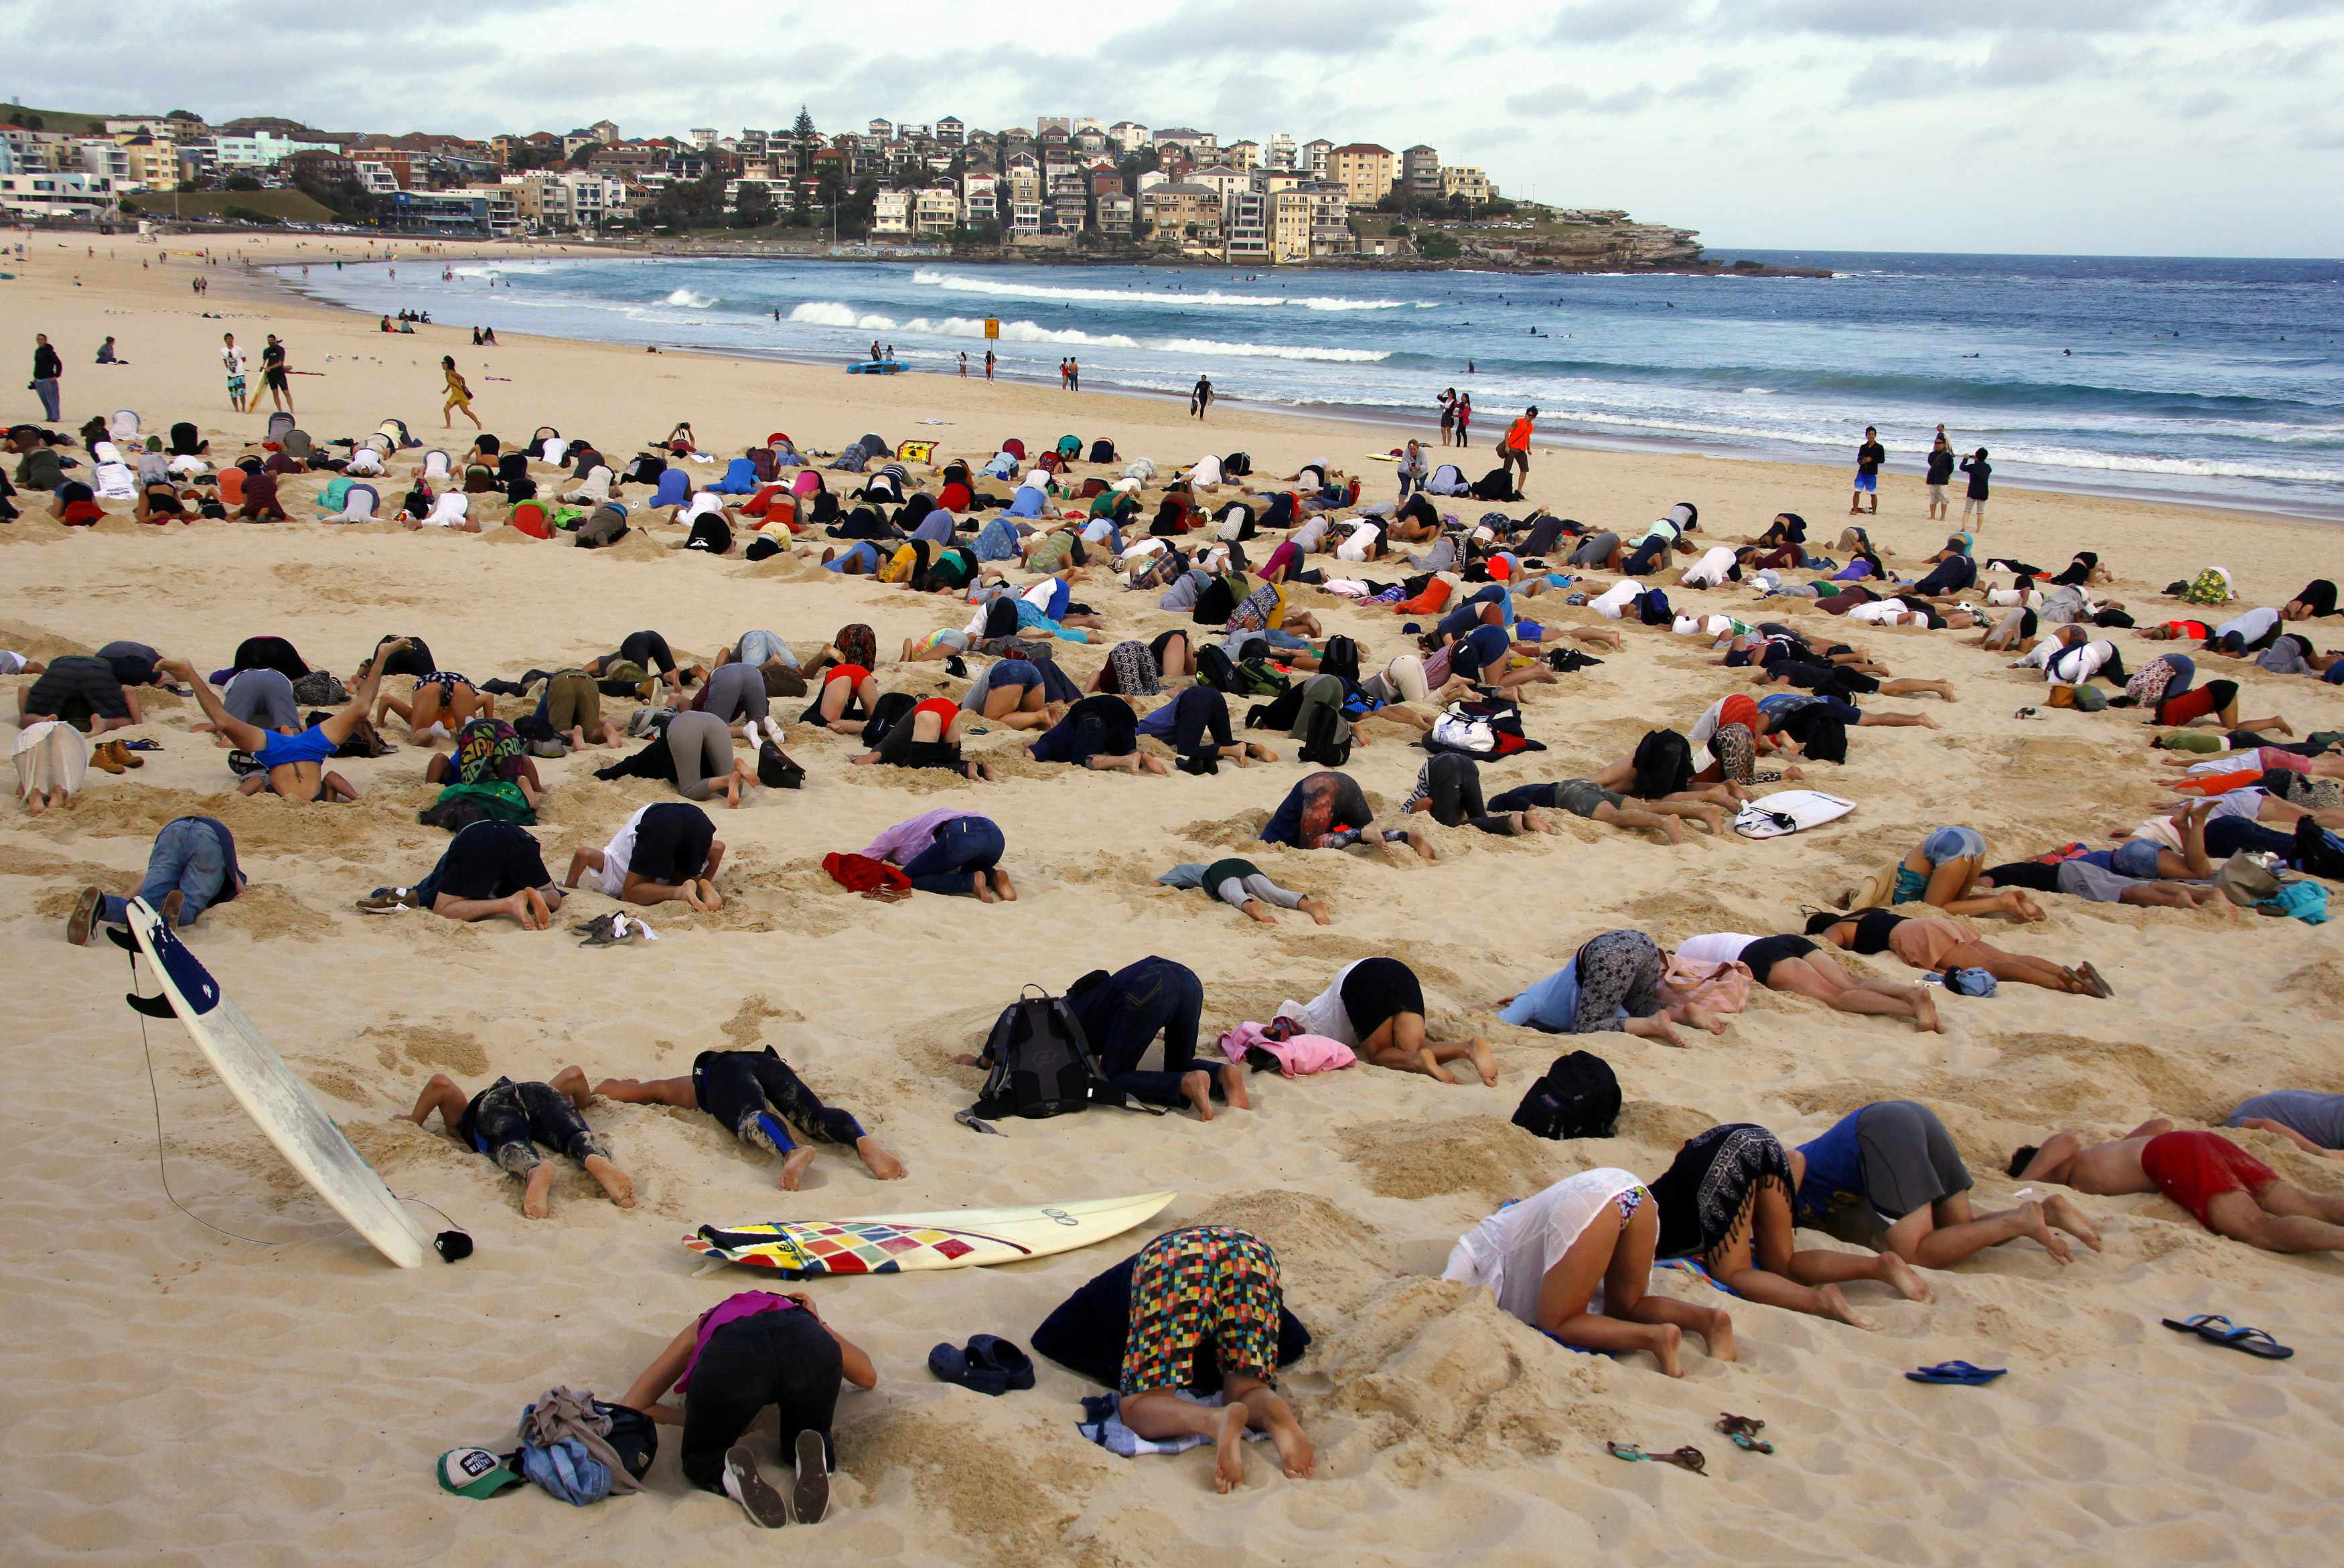 Is Australia A Democratic Country Australians Bury Heads In Sand To Mock Government Climate